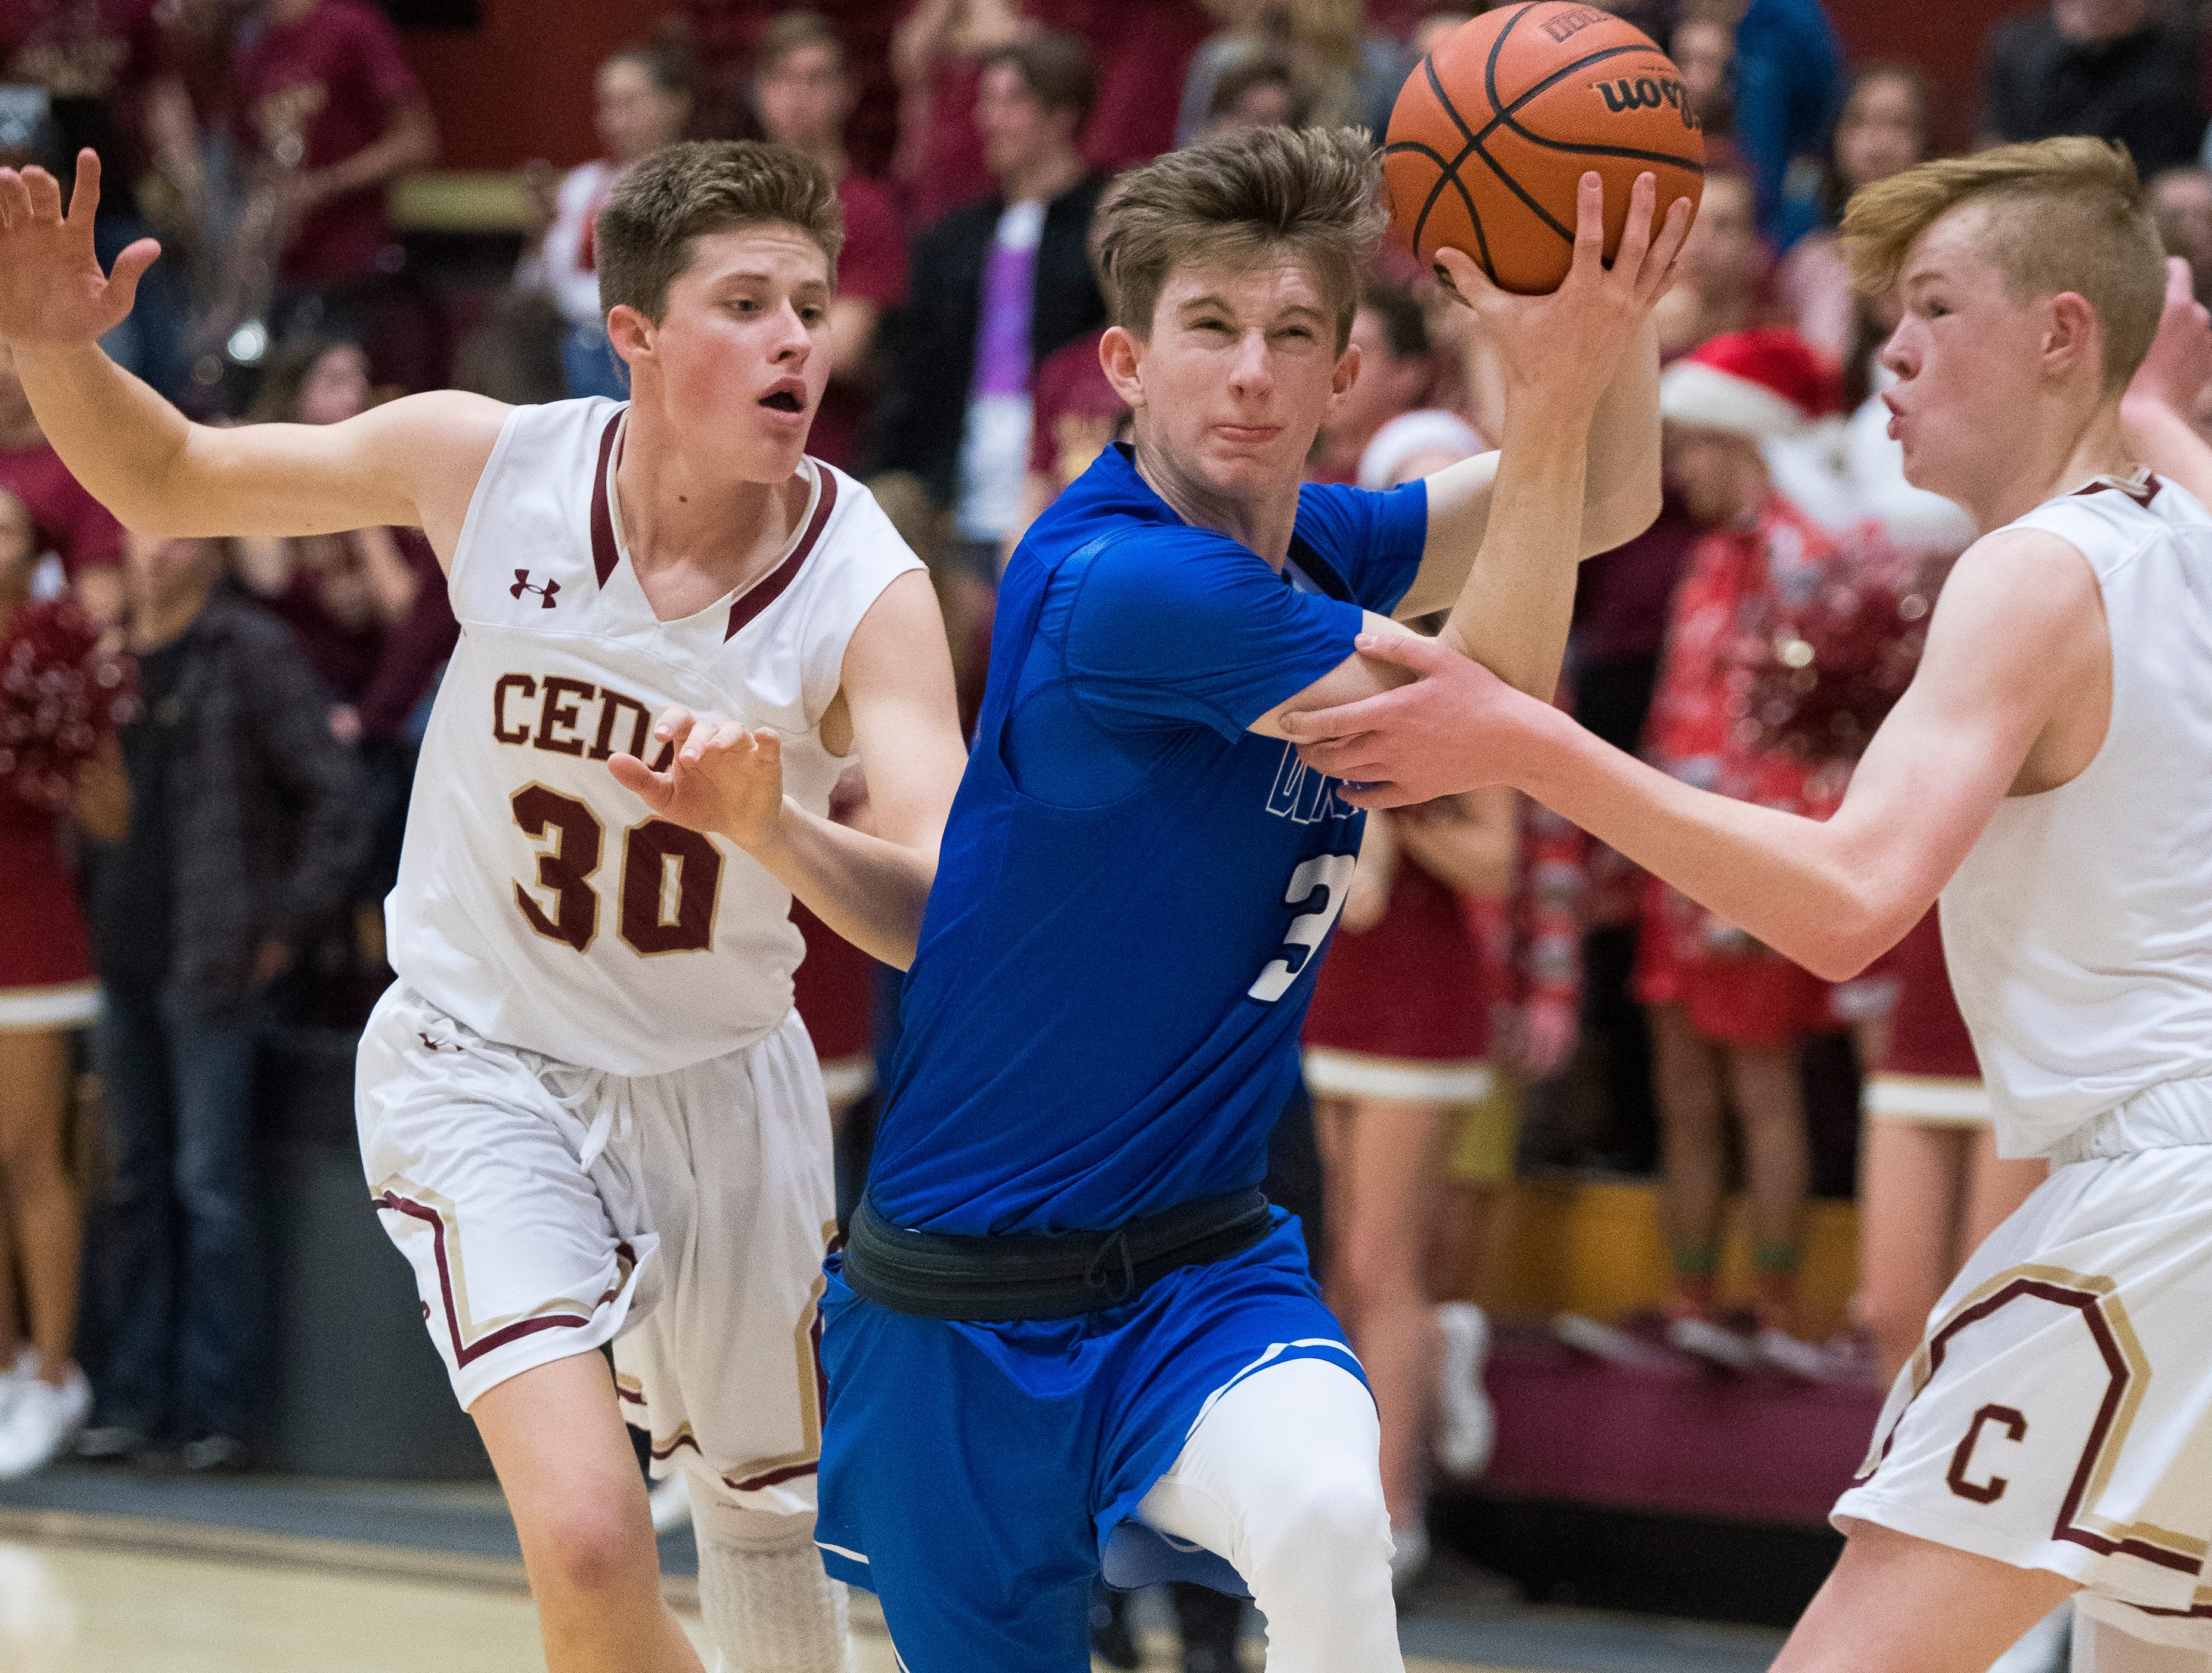 Dixie High School senior Nicholas Roundy (3) pushes toward the Cedar basket at CHS Wednesday, December 19, 2018. Trading the lead all game, Dixie won, 49-45.